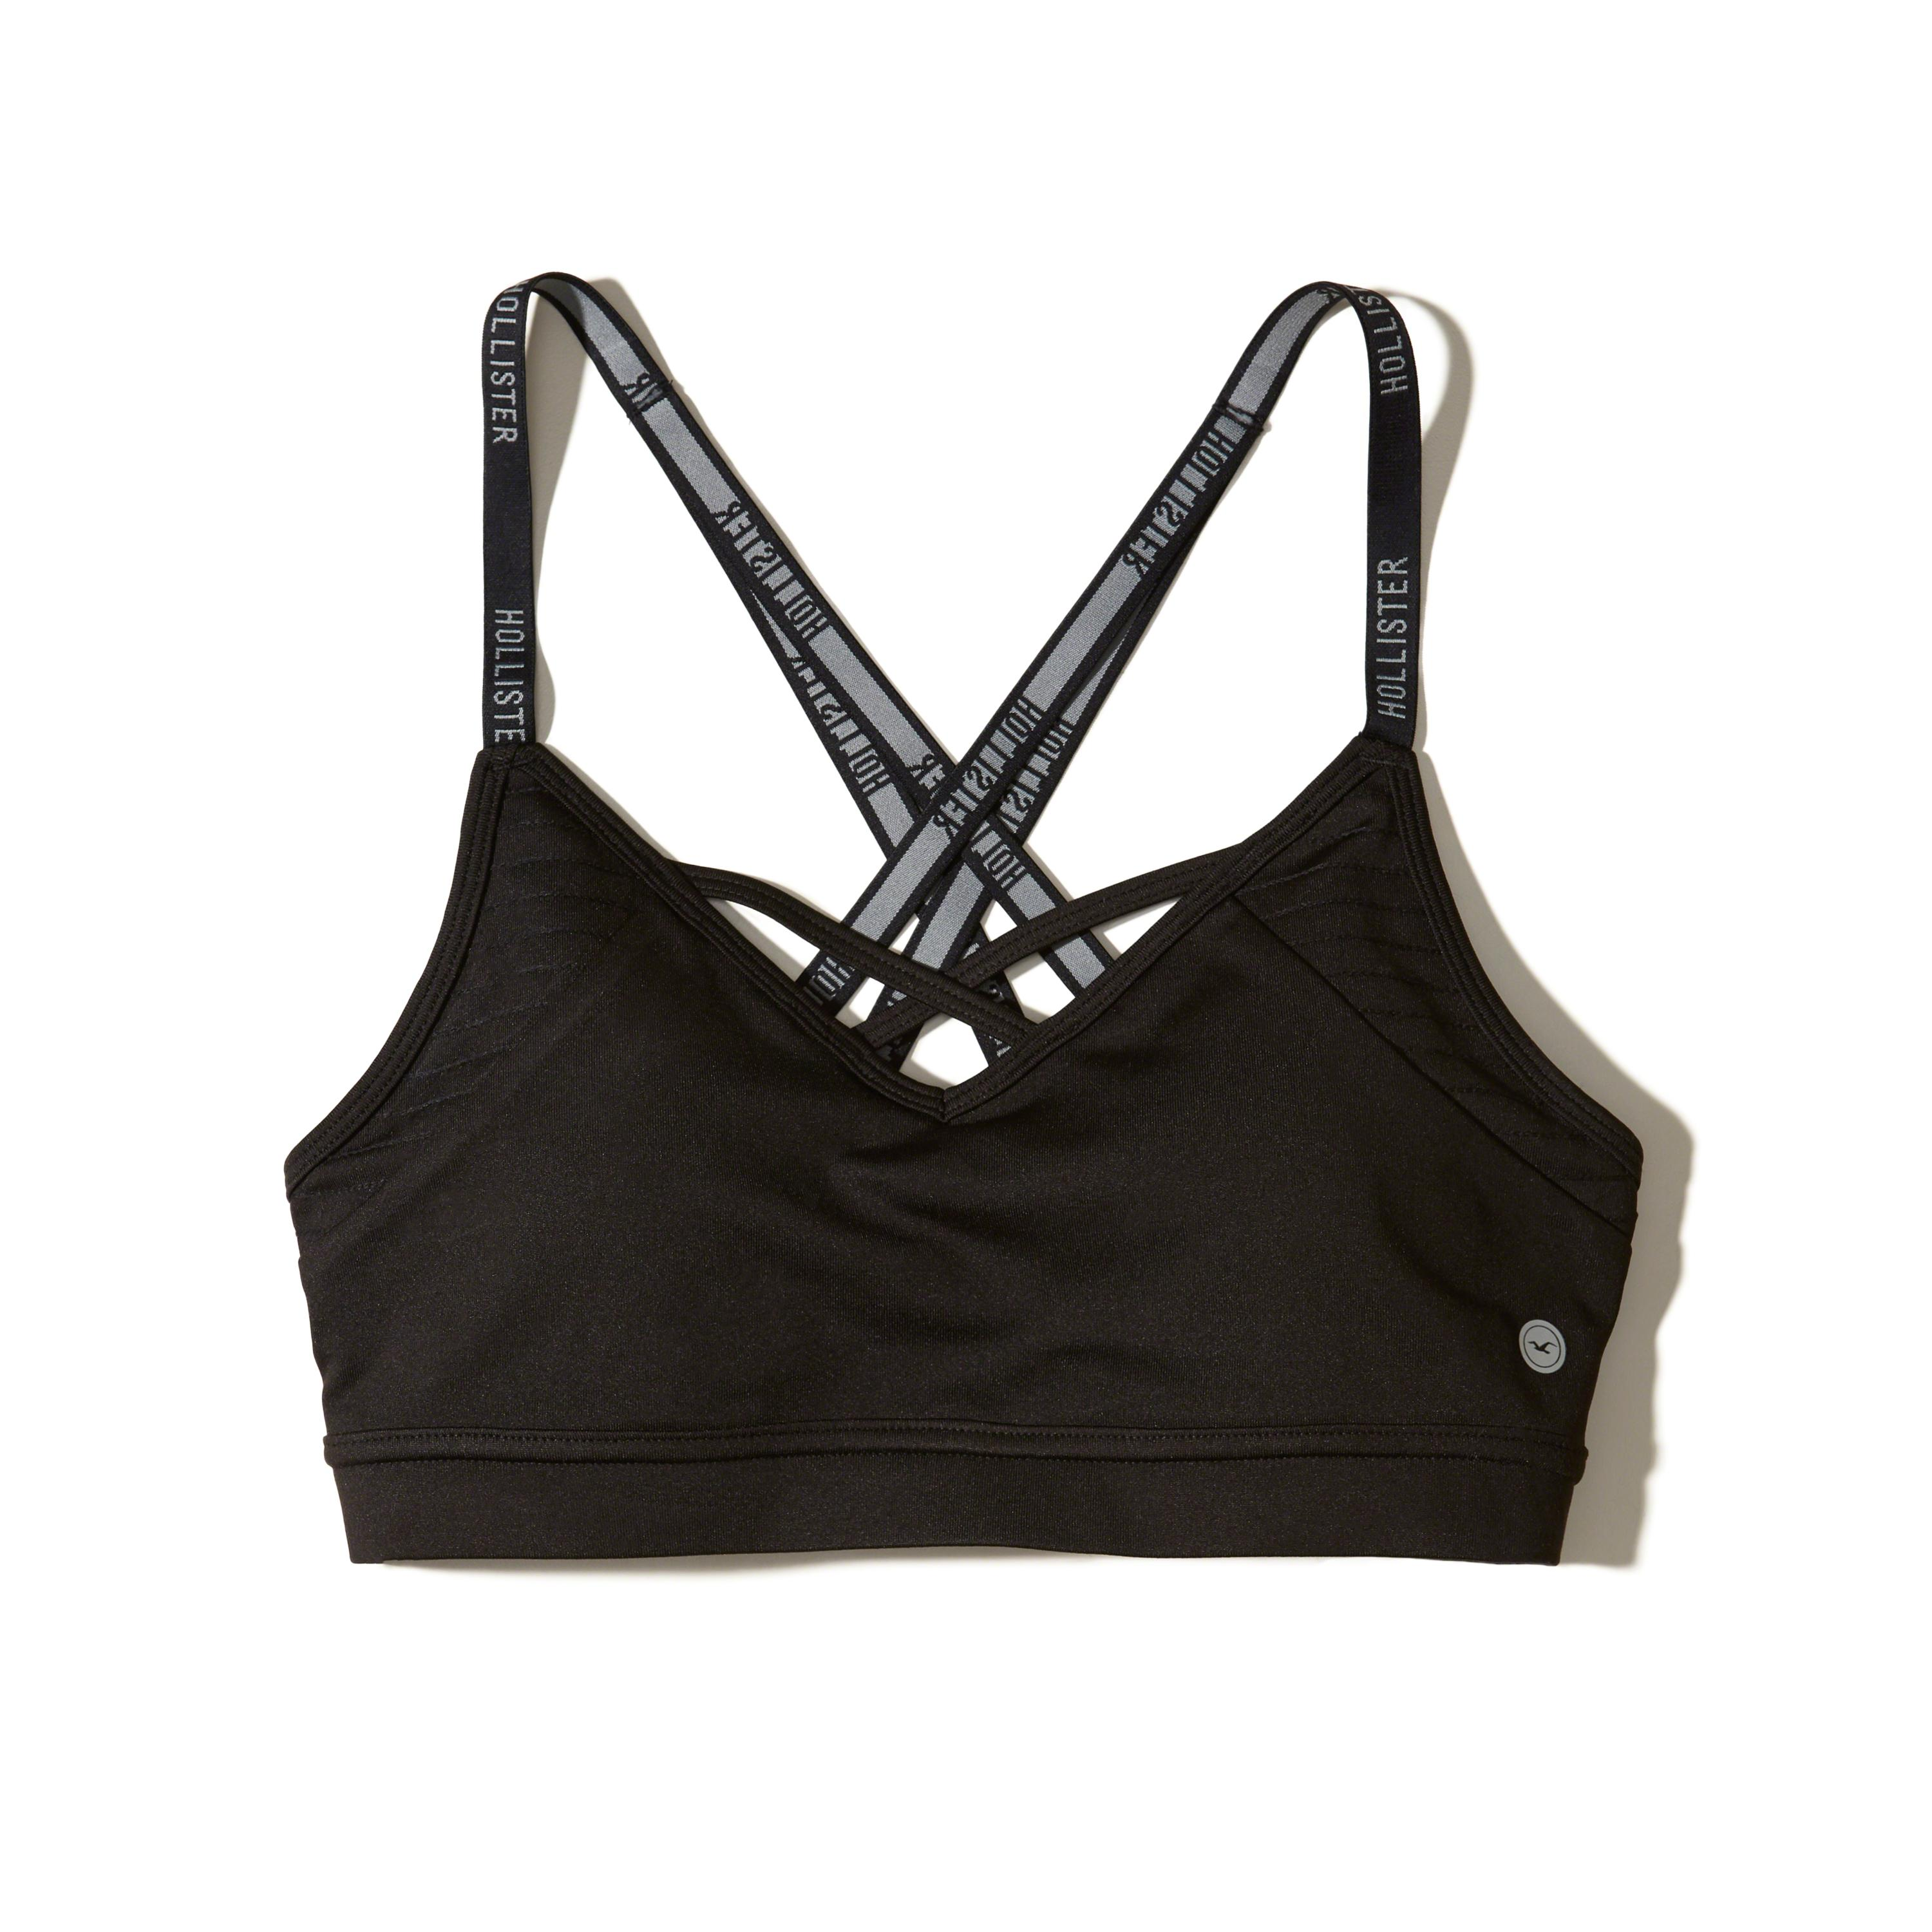 24b4631222b89 Lyst - Hollister Strappy Sports Bra in Black